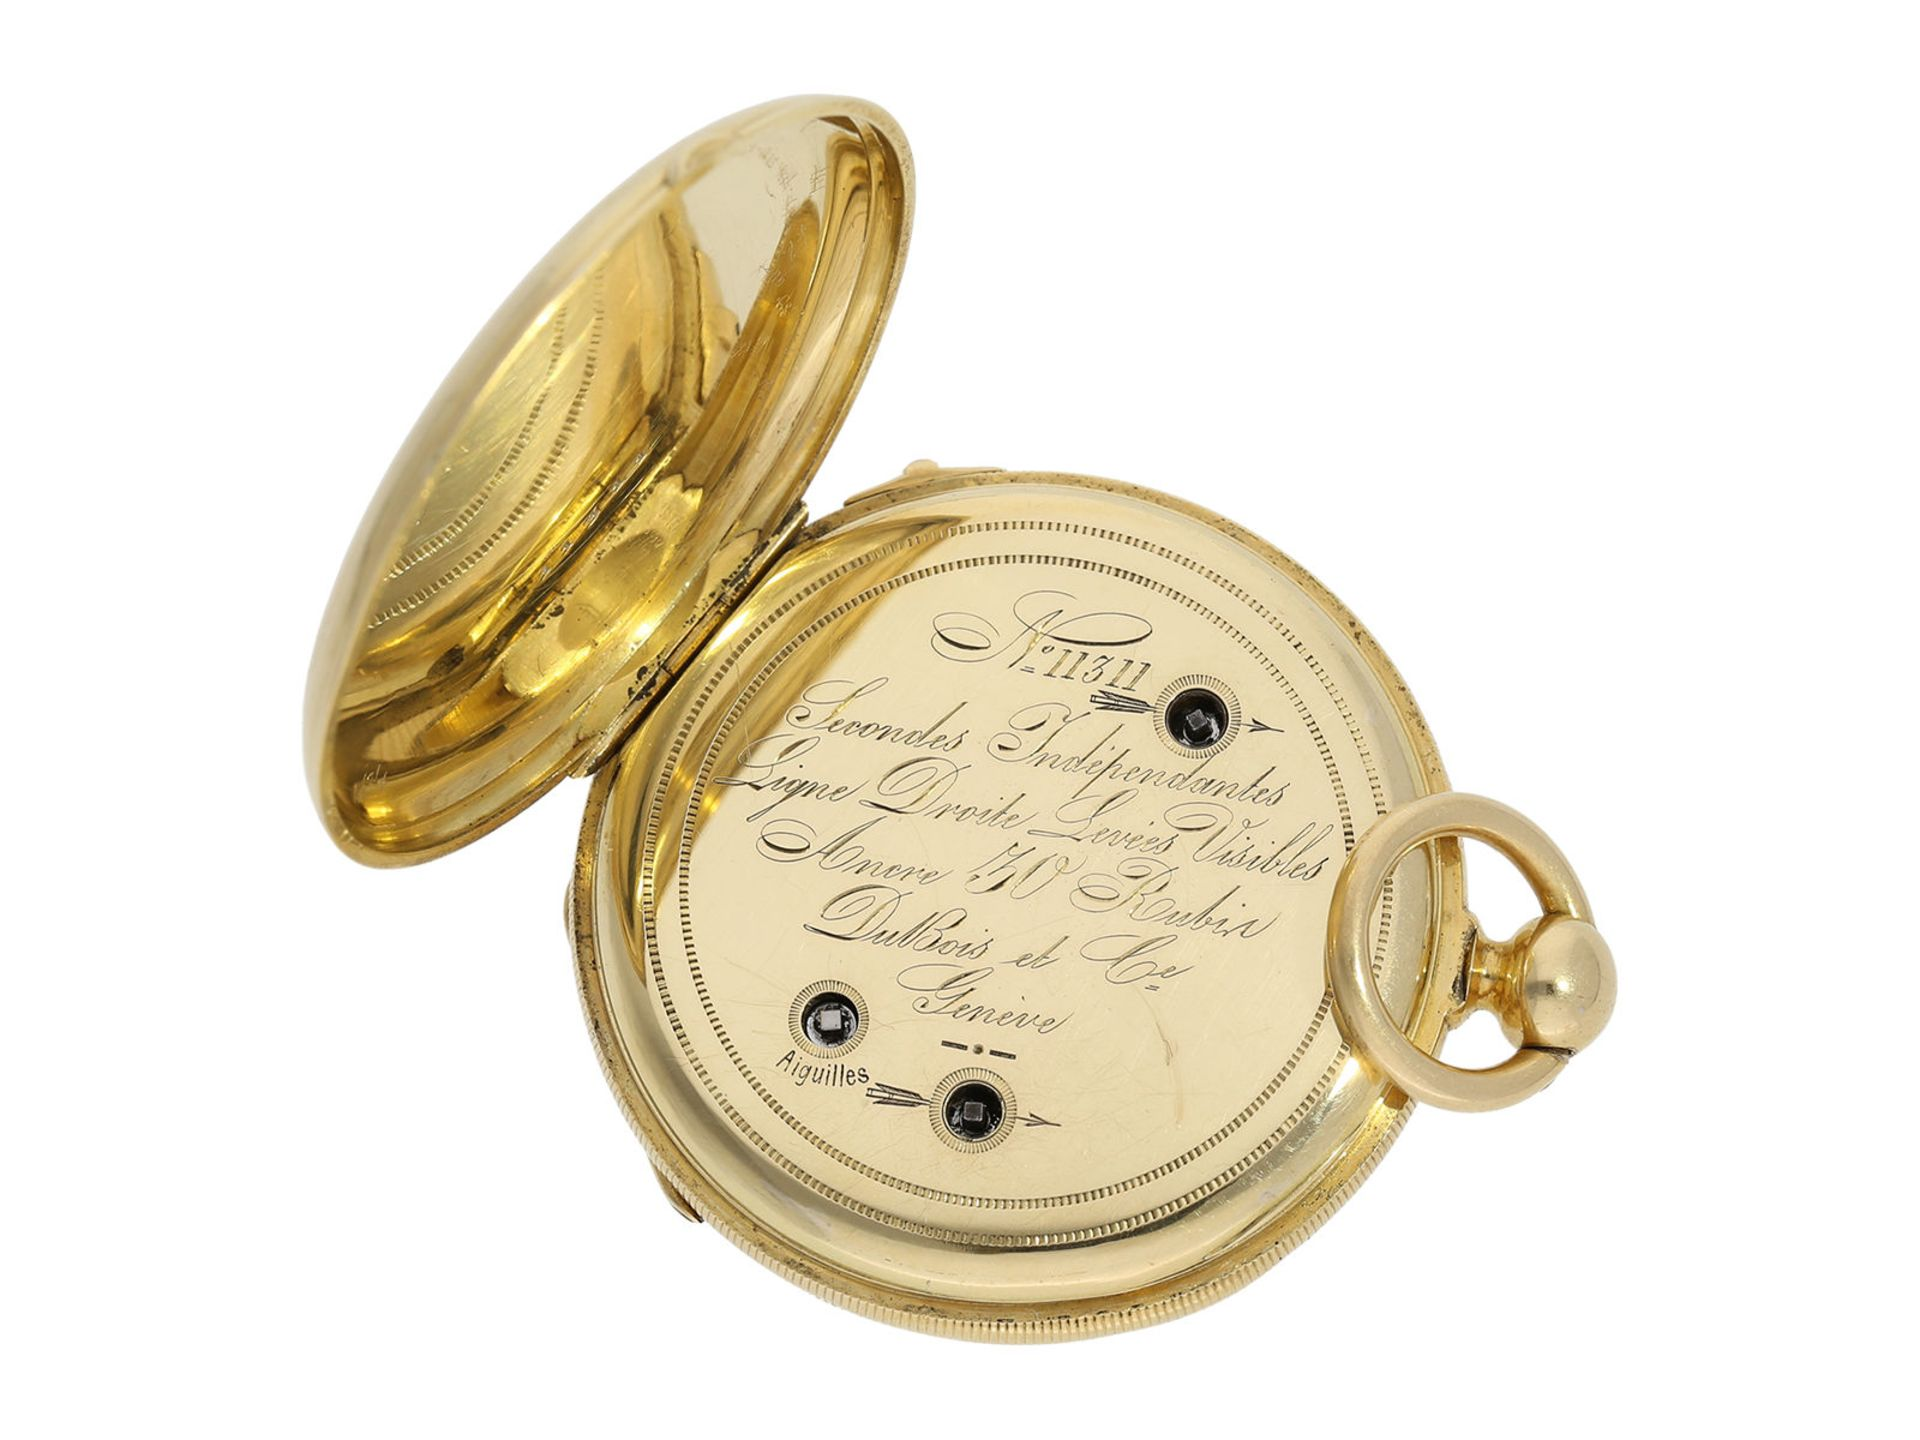 Pocket watch: fine Lepine with Seconde Morte, DuBois & Fils Geneve No. 11311, ca. 1850 - Bild 2 aus 6